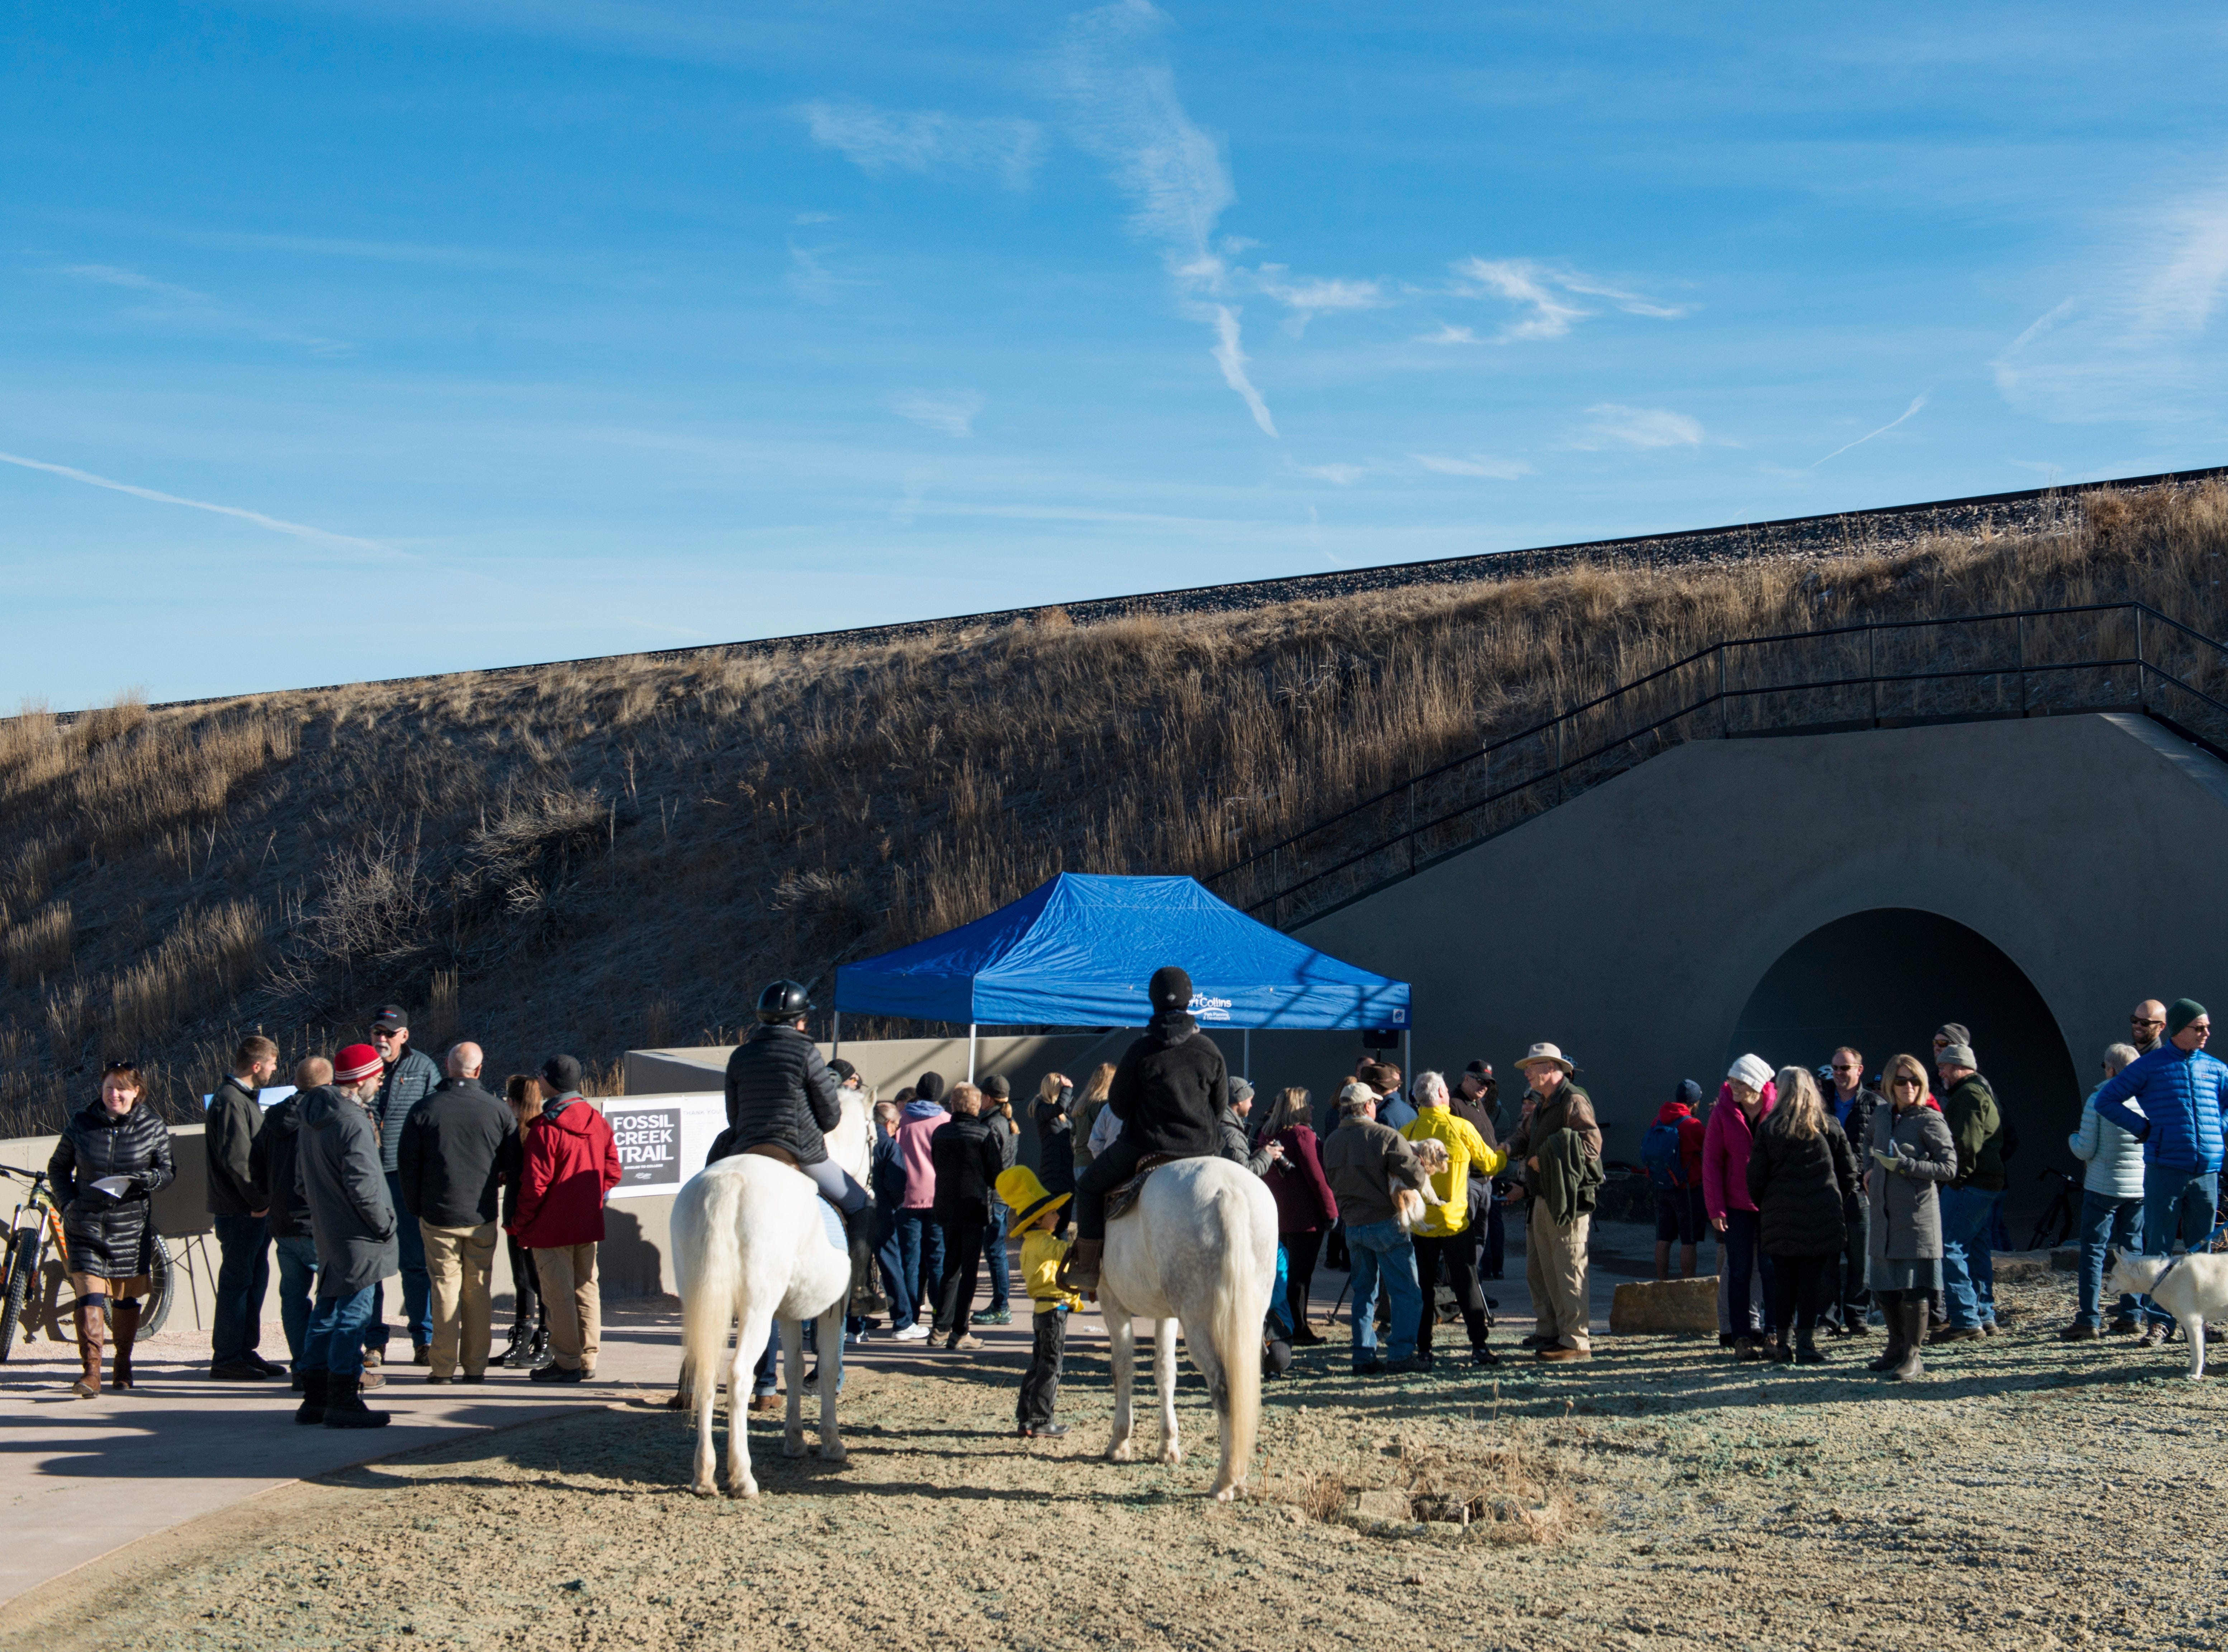 People attend a ribbon-cutting for the new 70-foot-long Fossil Creek Trail pedestrian tunnel in south Fort Collins on Monday, December 10, 2018. The new 1.7 mile section of trail runs under the BNSF railway to connect College Avenue and Shields Street.